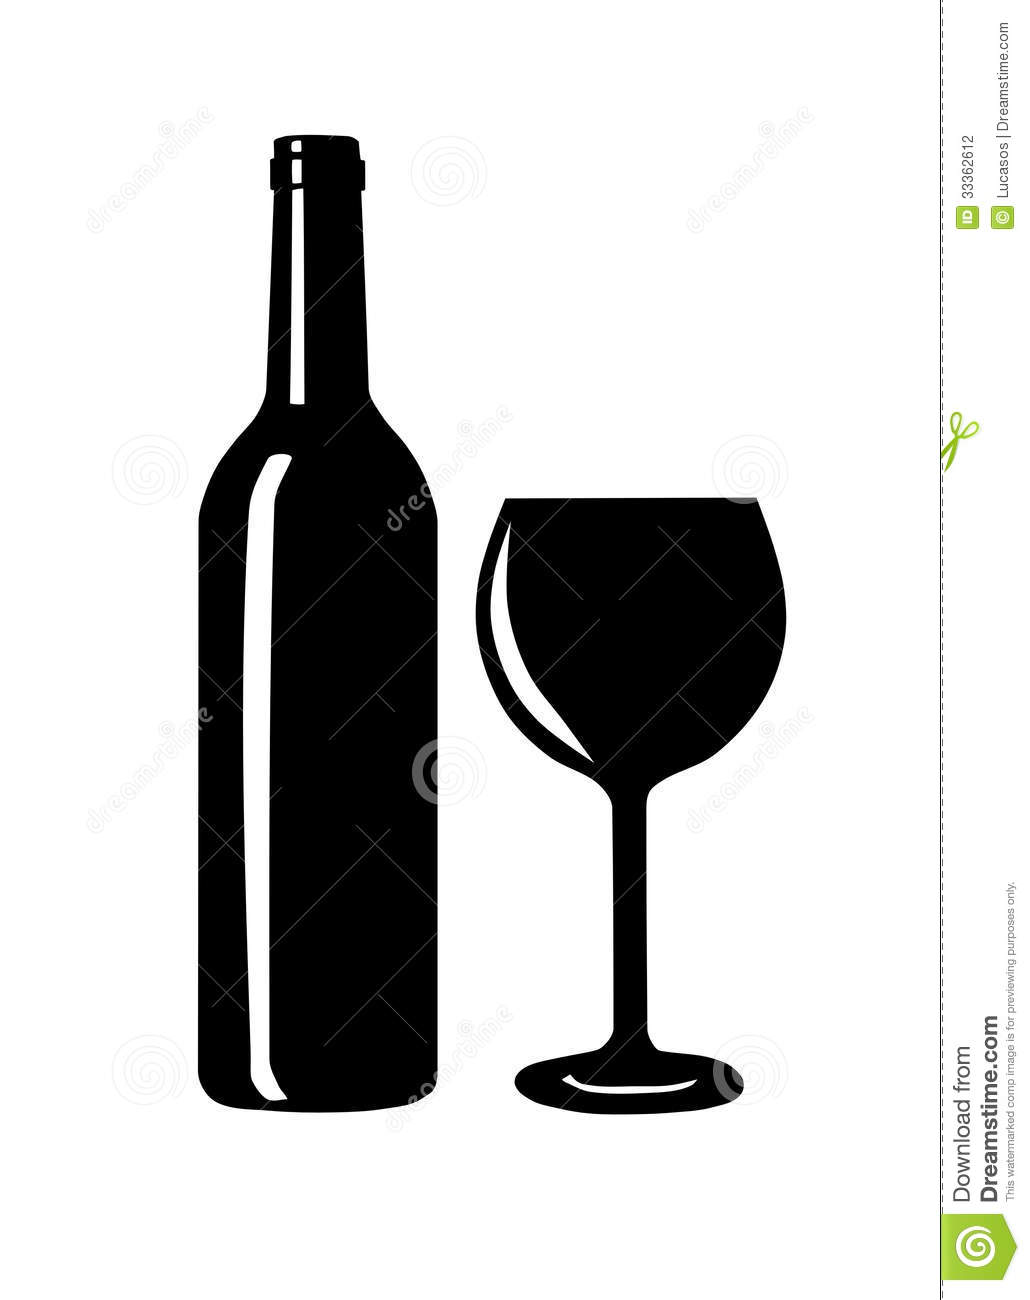 wine bottle and glass silhouette stock vector illustration of rh dreamstime com wine bottle vector free download wine bottle vector sketch